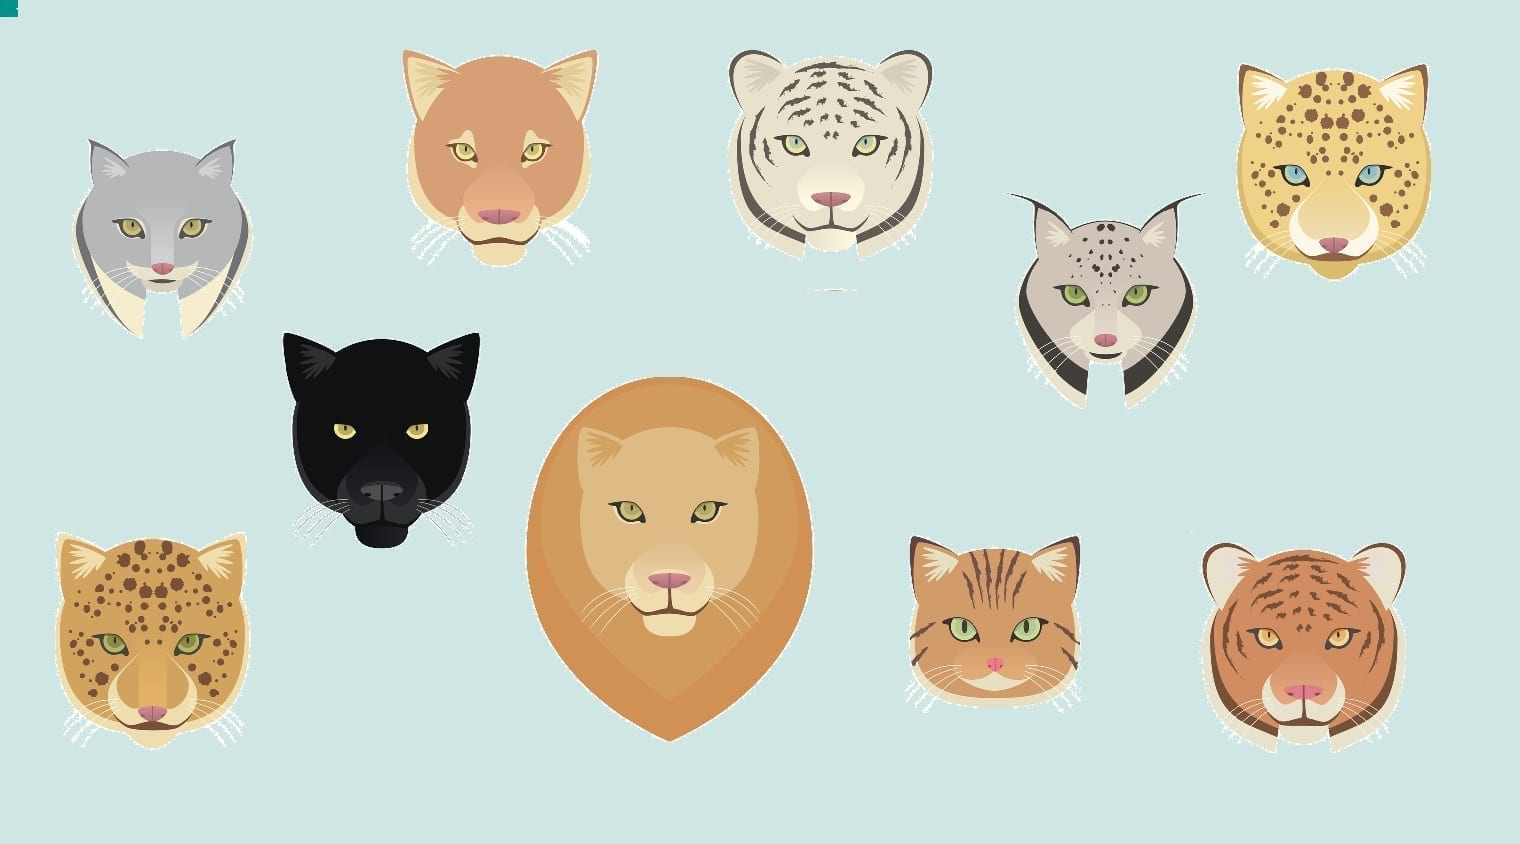 Various cat faces: Illustration 46721632 © Tomacco | Dreamstime.com